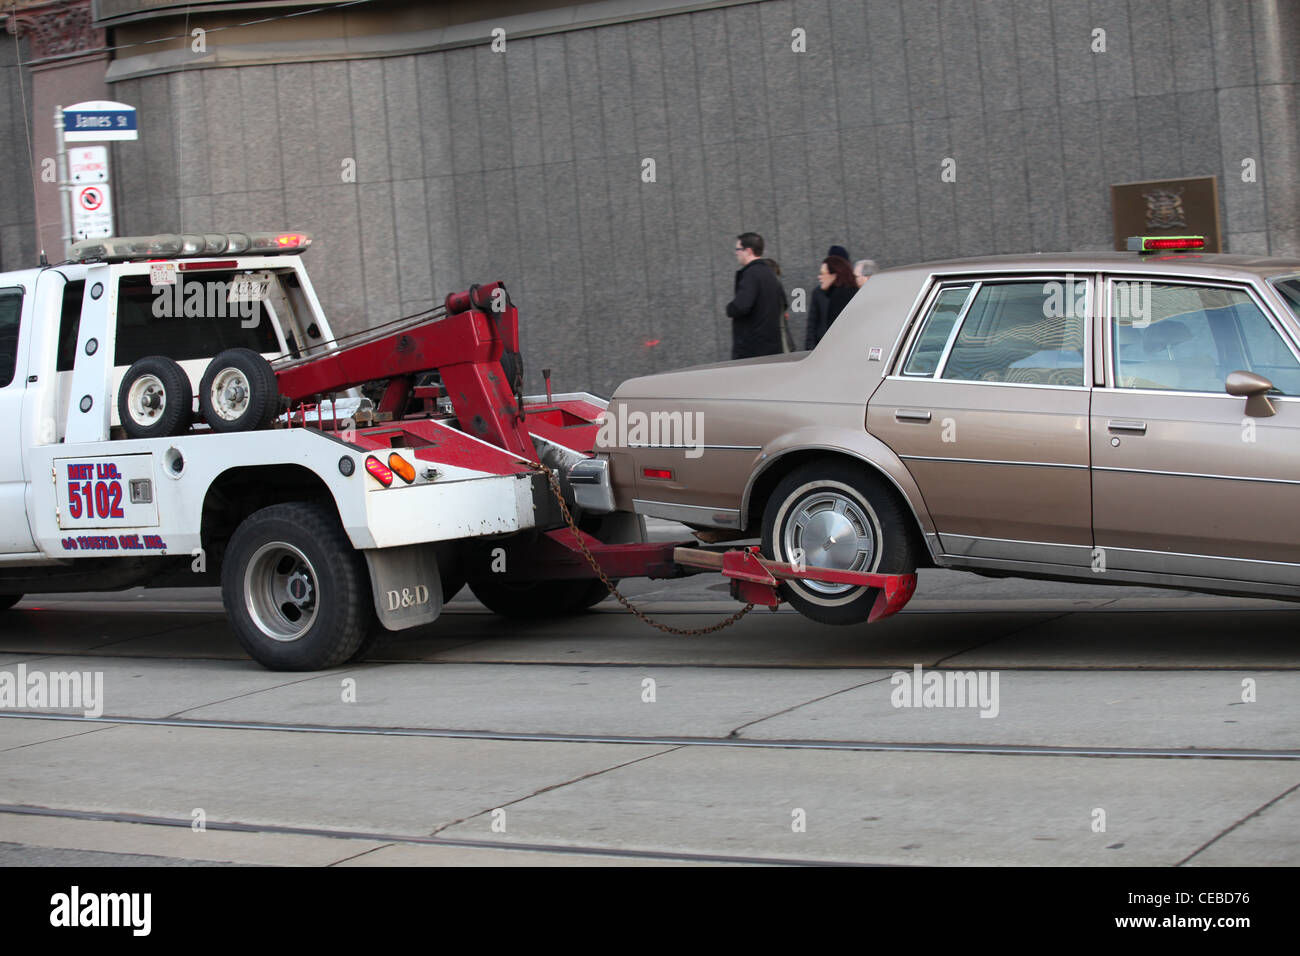 Tow truck hauling a car on street in downtown toronto canada stock image